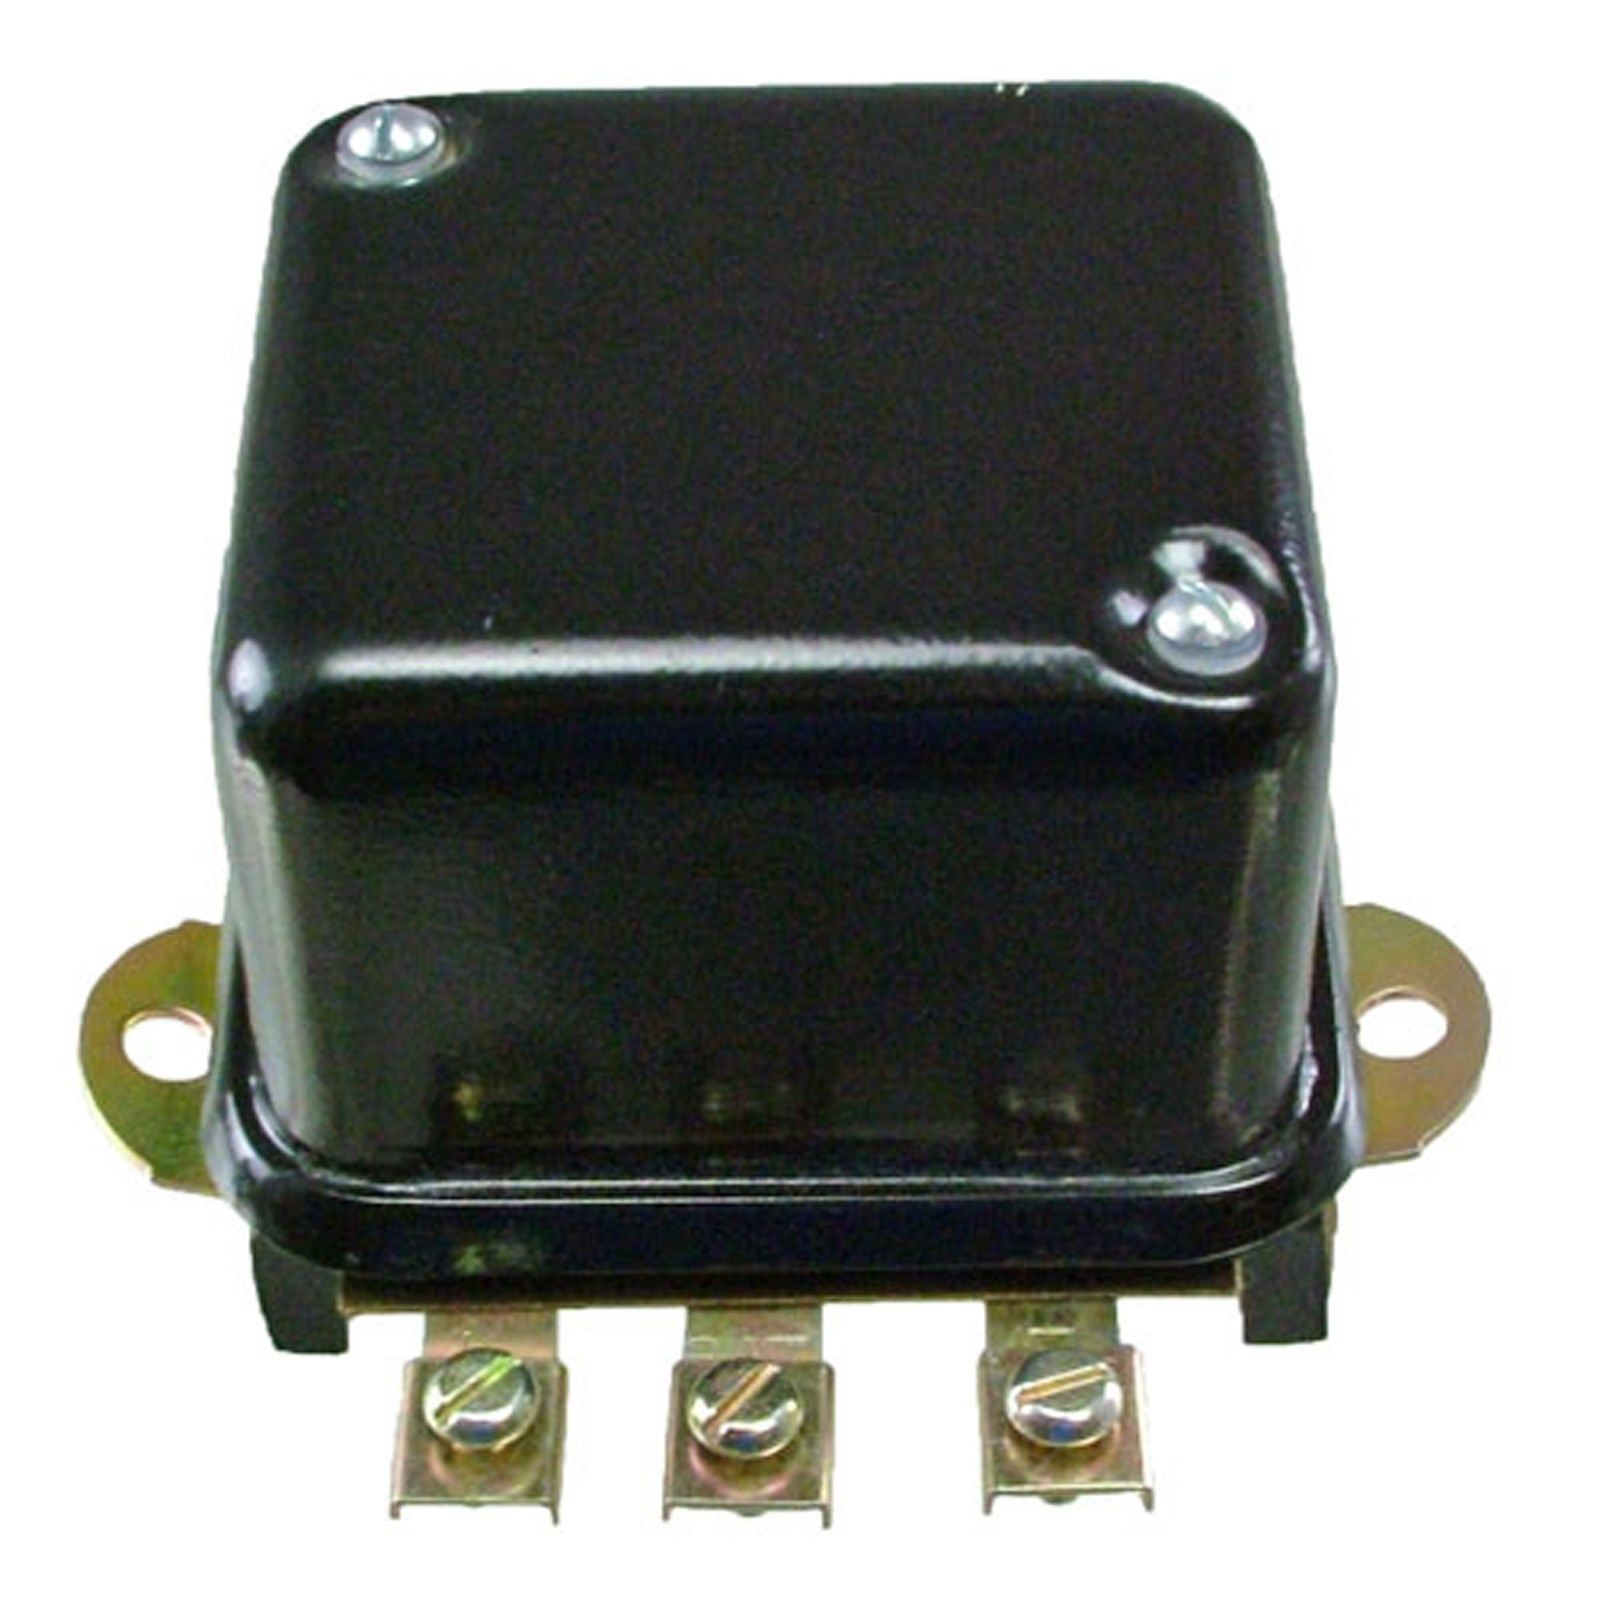 Voltage Regulator For Cub Cadet 125 126 127 128 129 147 149 124 Wiring Diagram New 12 Volt Replaces Delco Remy Starter Generator 1118981 1118988